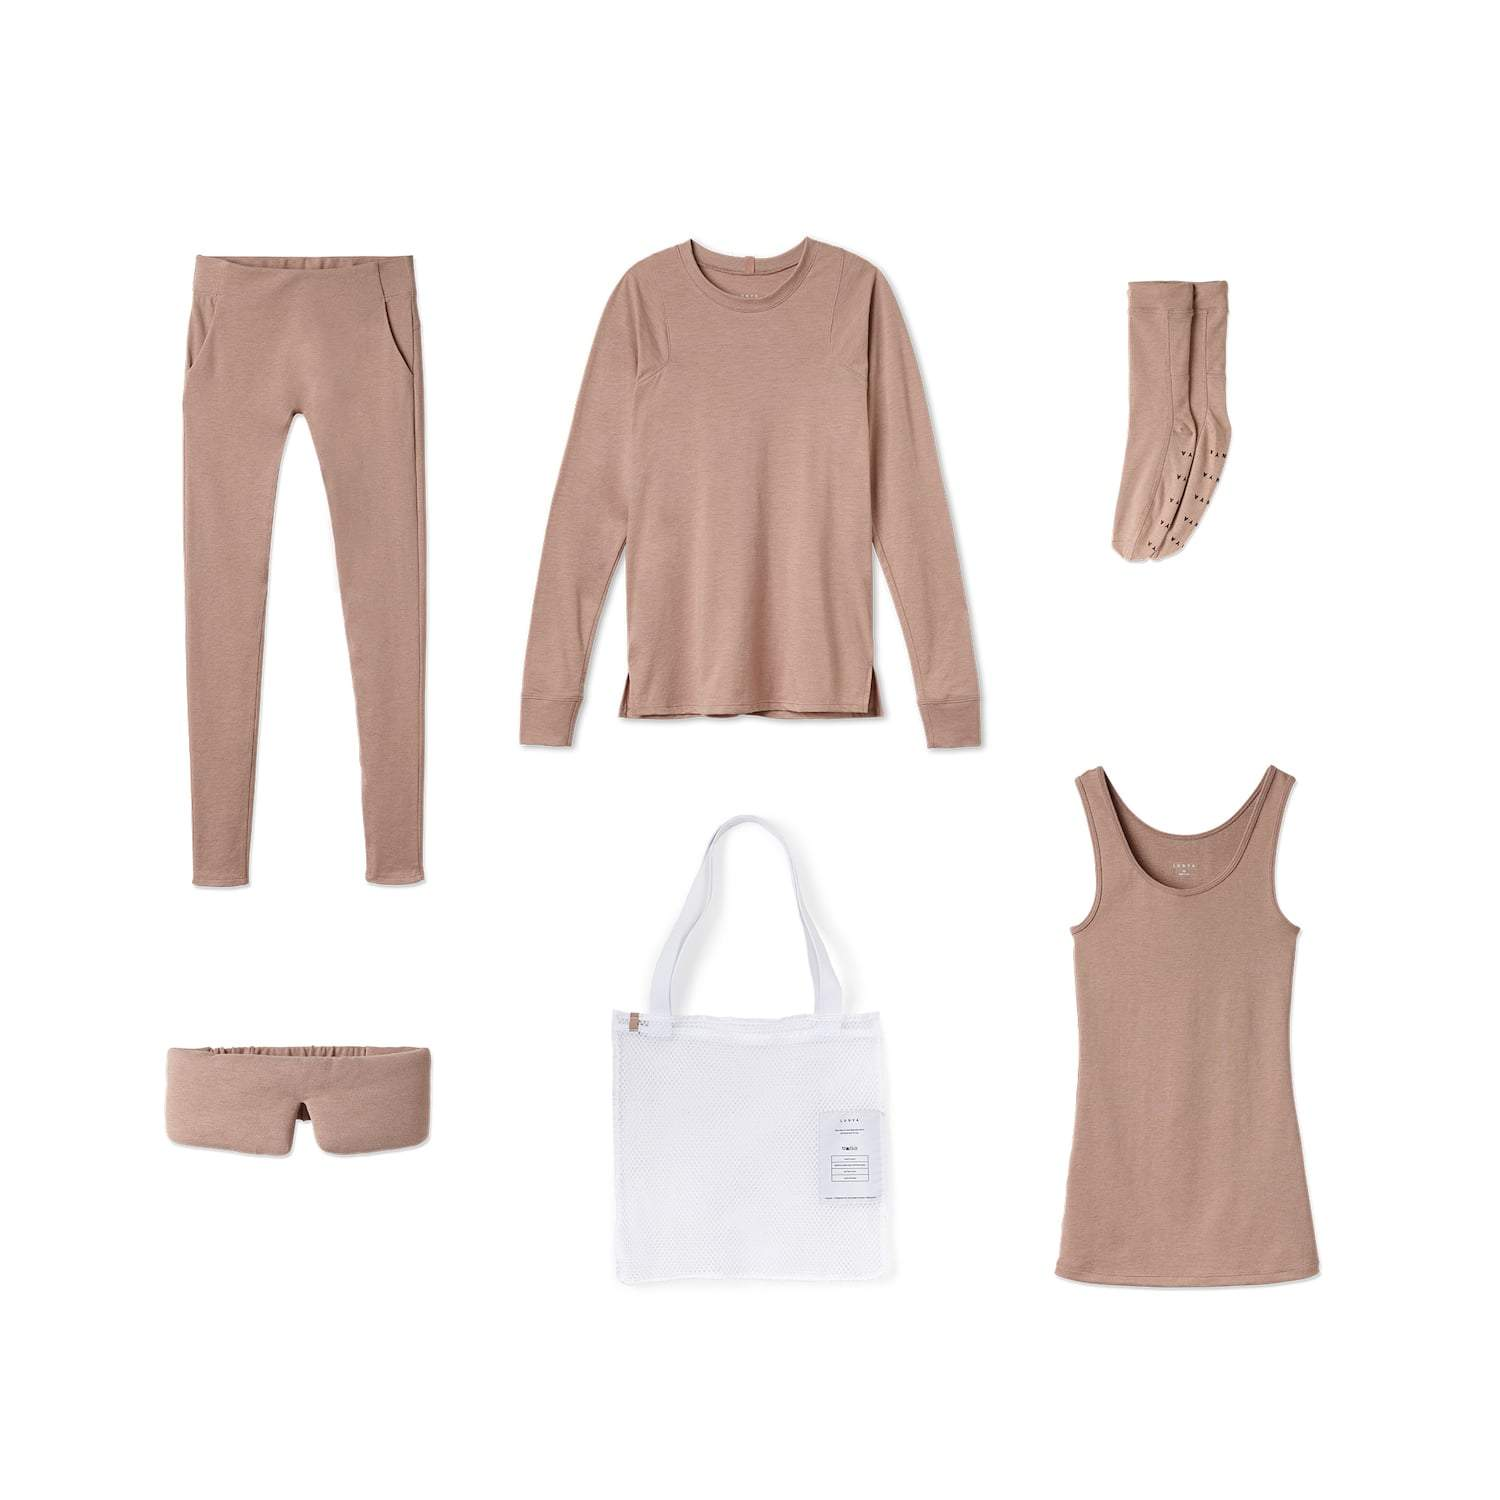 Lunya Sleepwear Restore Pima Travel Kit - #Bare